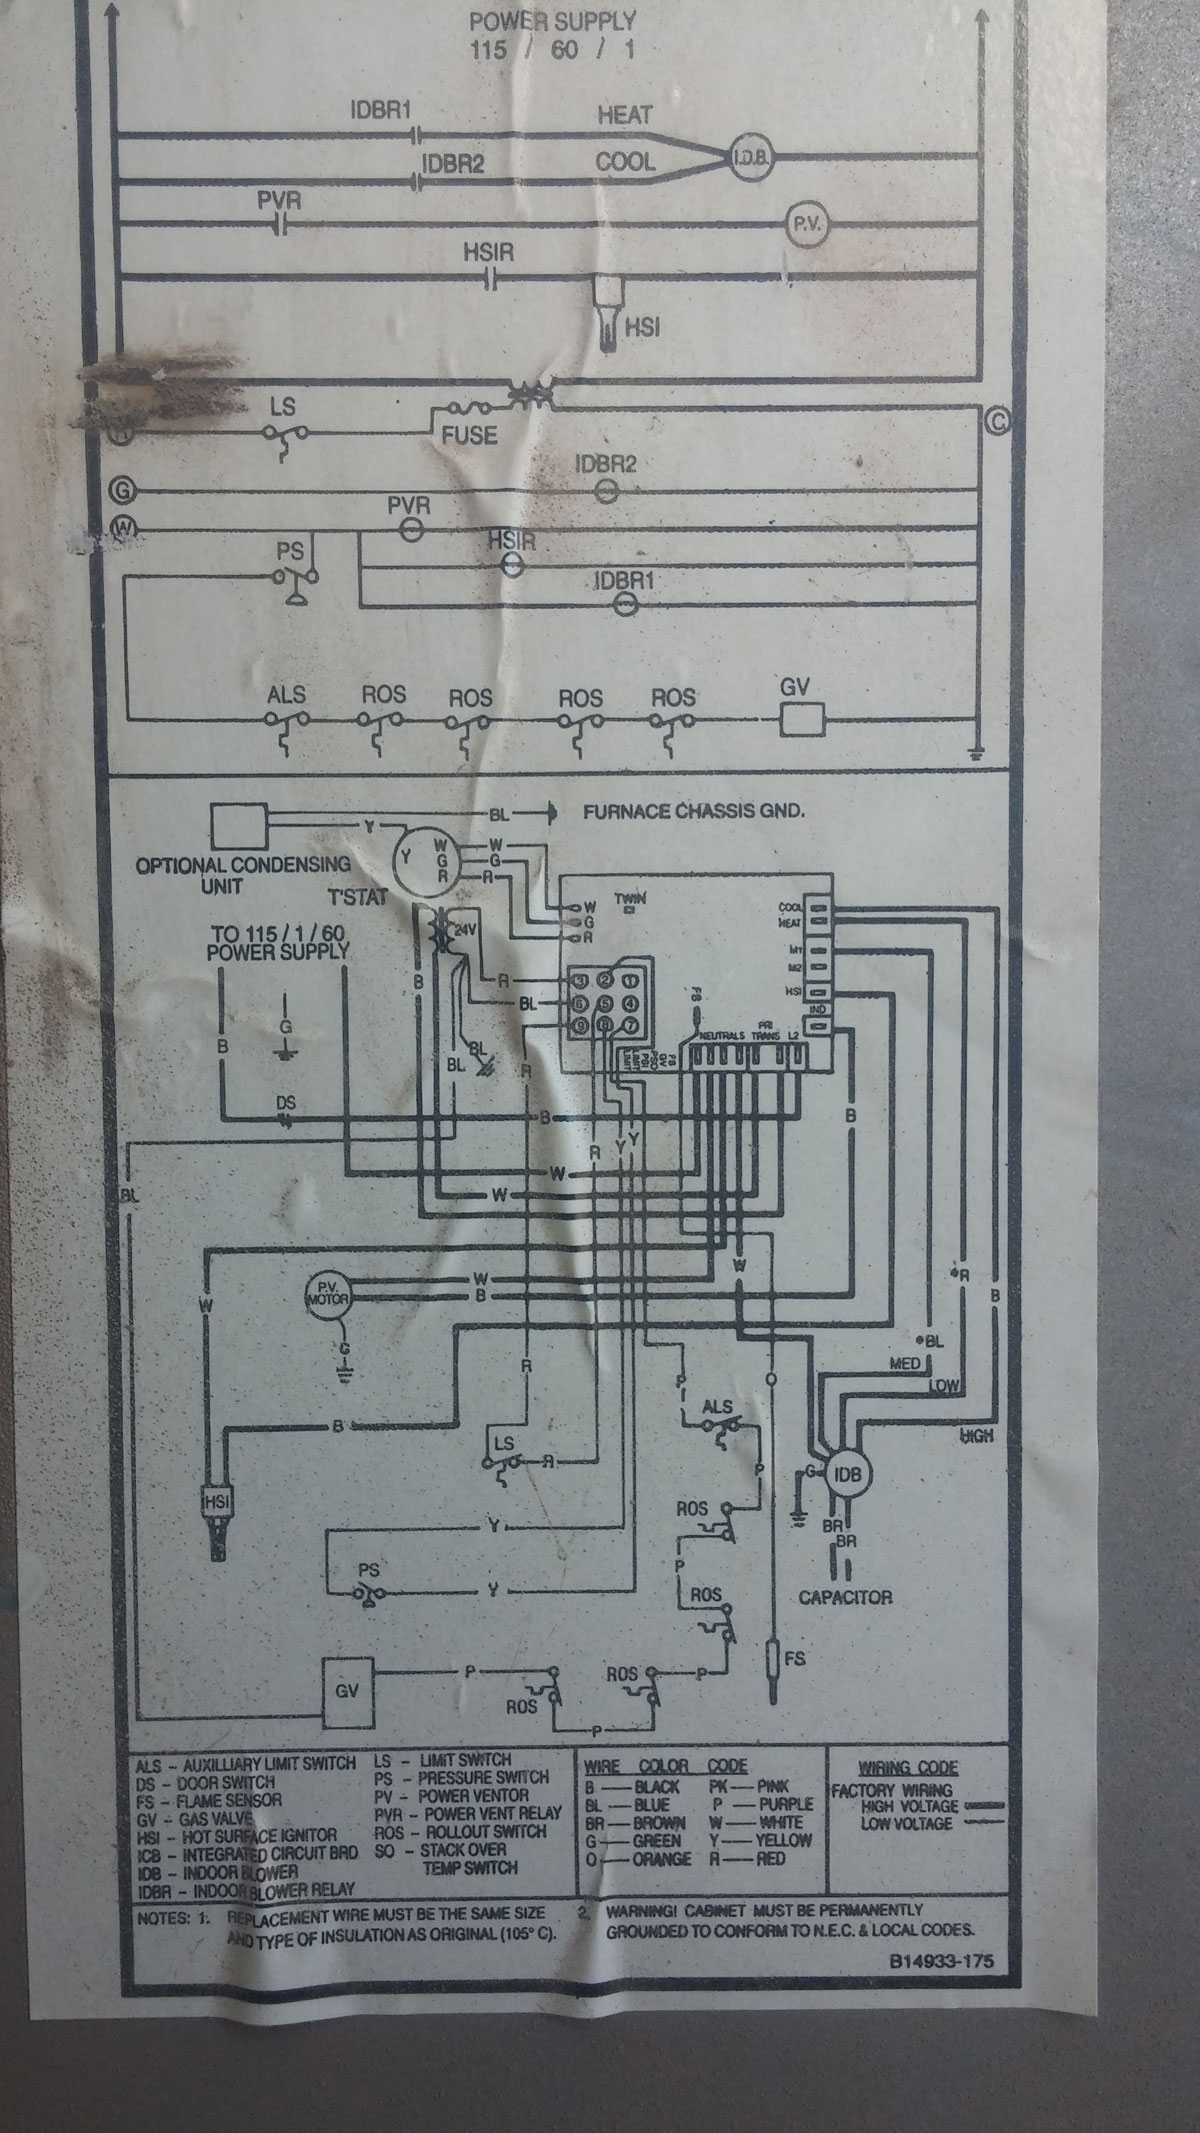 In Wall Wiring Diagram